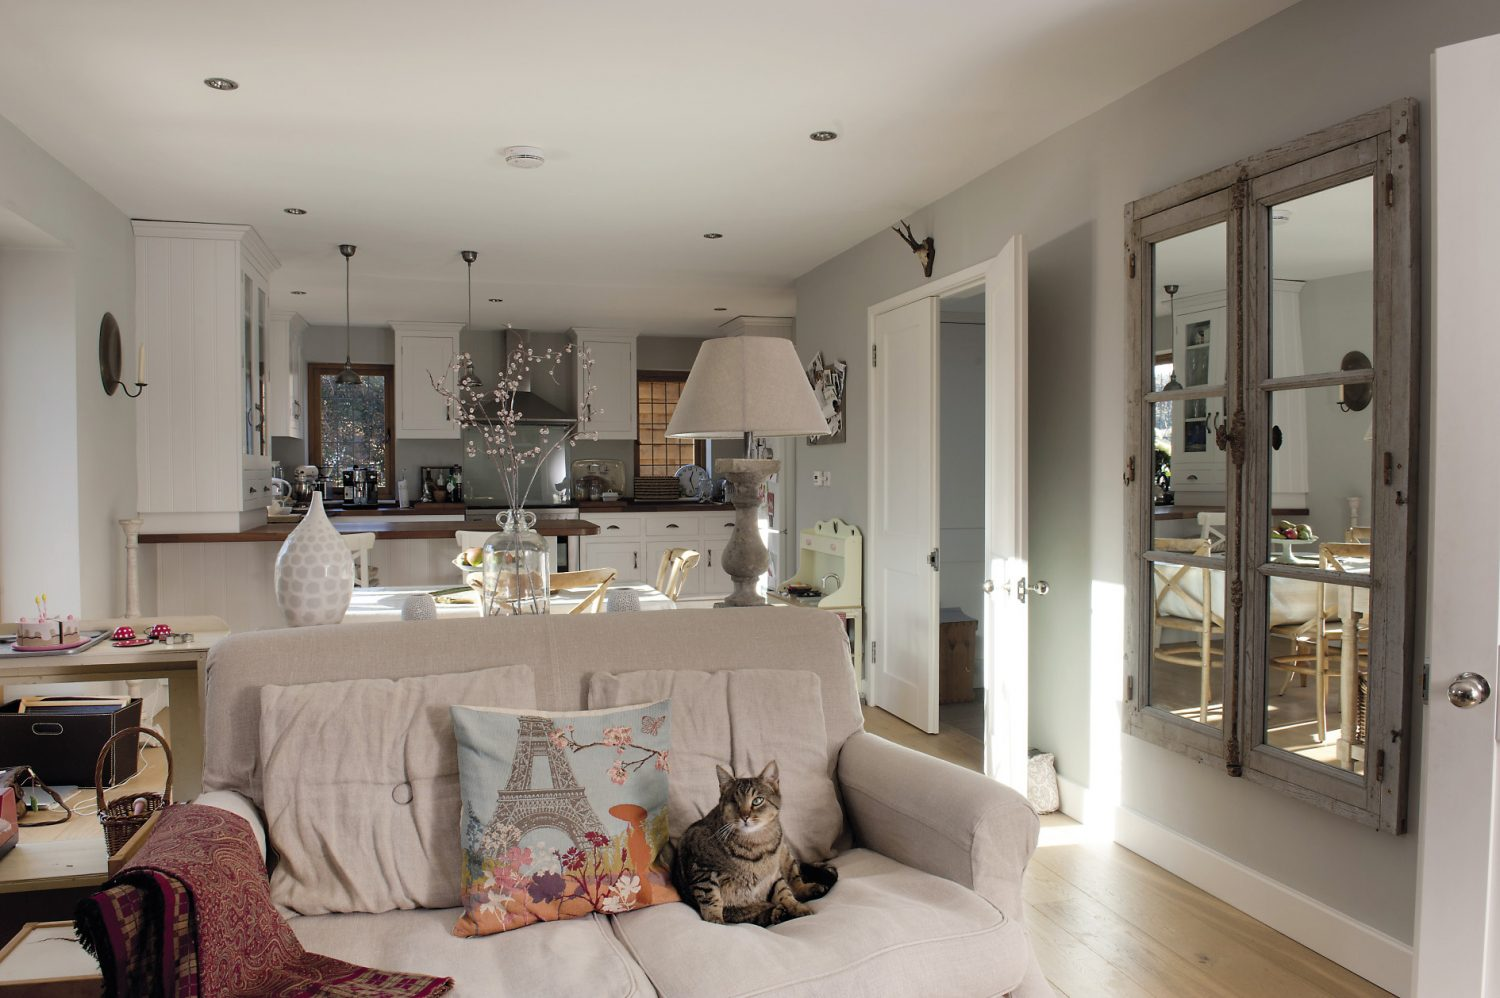 A lovely window from a French chateau has been fitted with mirrored glass and mounted on the wall opposite the room's true window